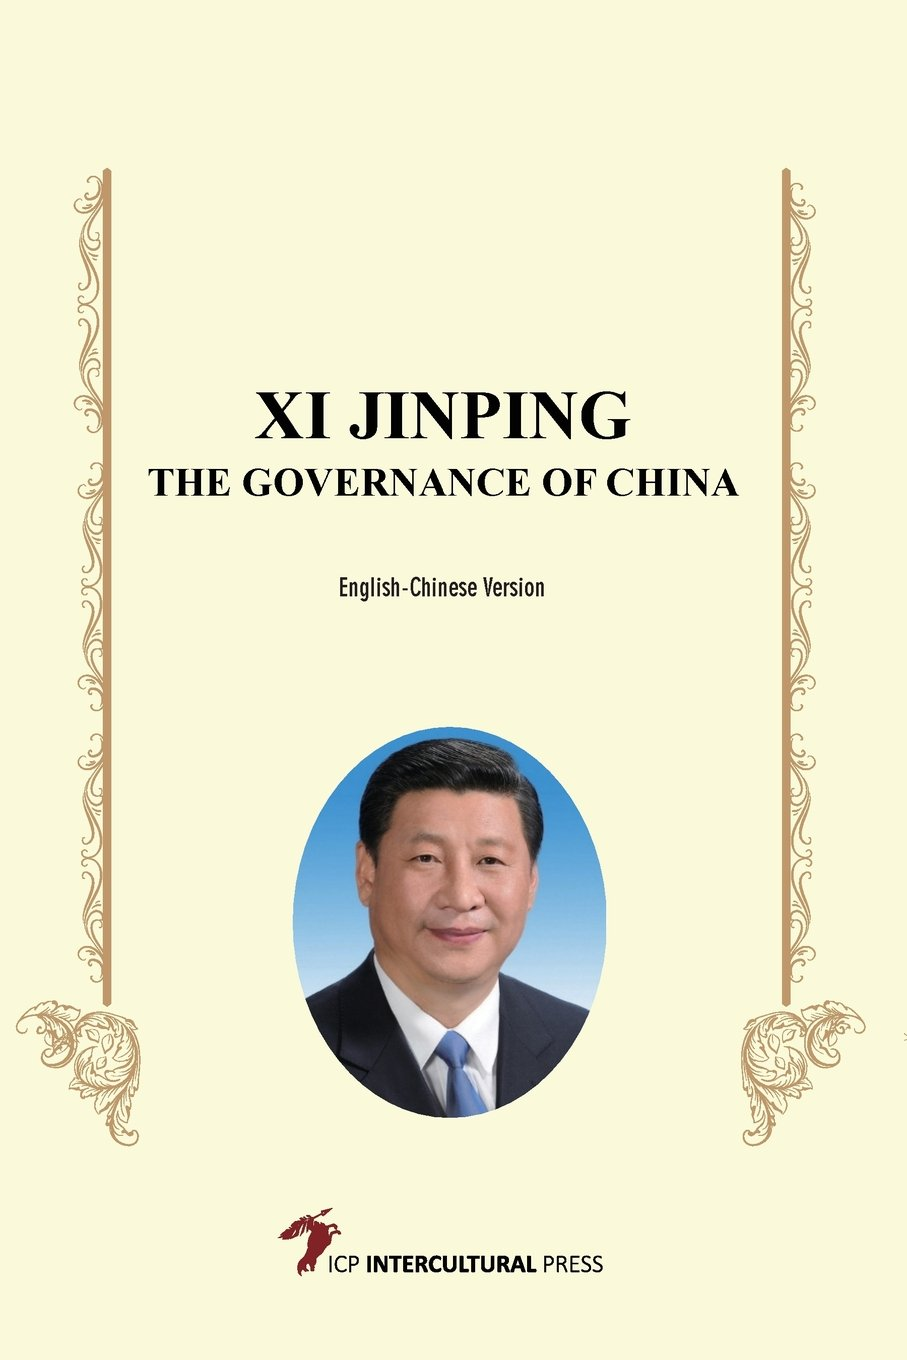 Xi Jinping: The Governance of China (English-Chinese Version): Xi Jinping:  9781503242036: Amazon.com: Books